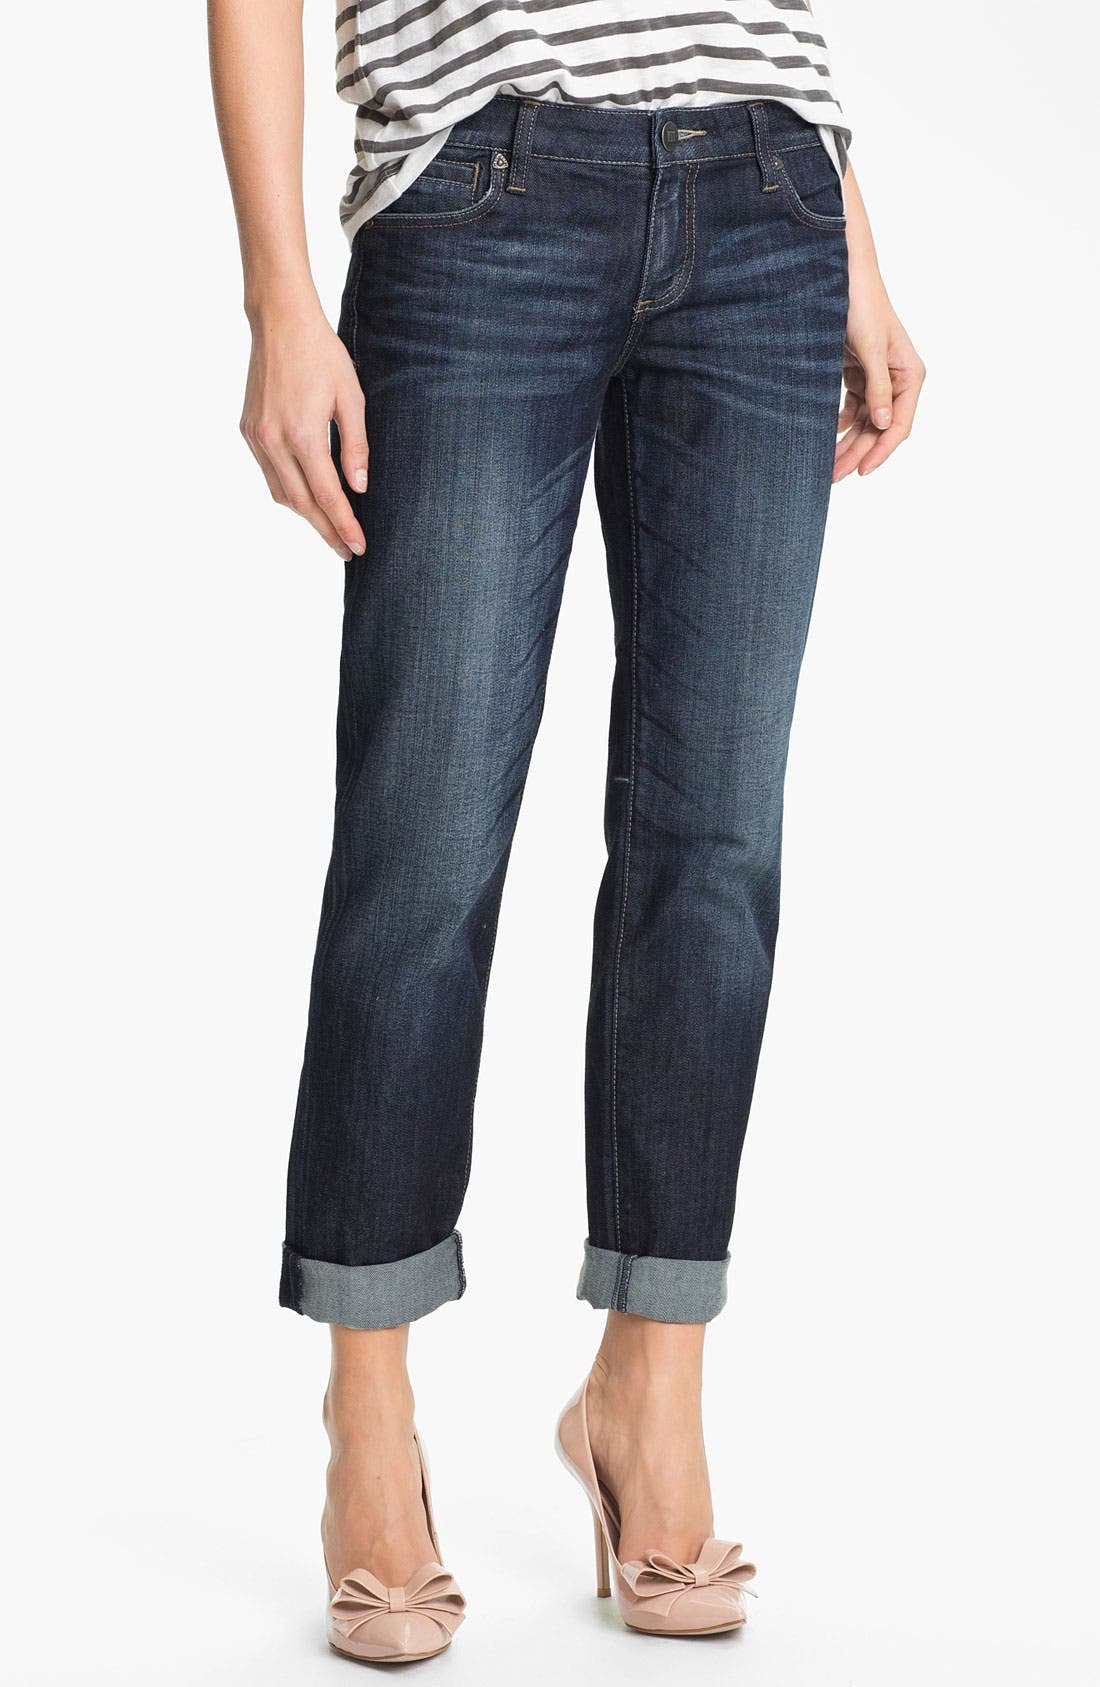 Alternate Image 1 Selected - KUT from the Kloth Boyfriend Jeans